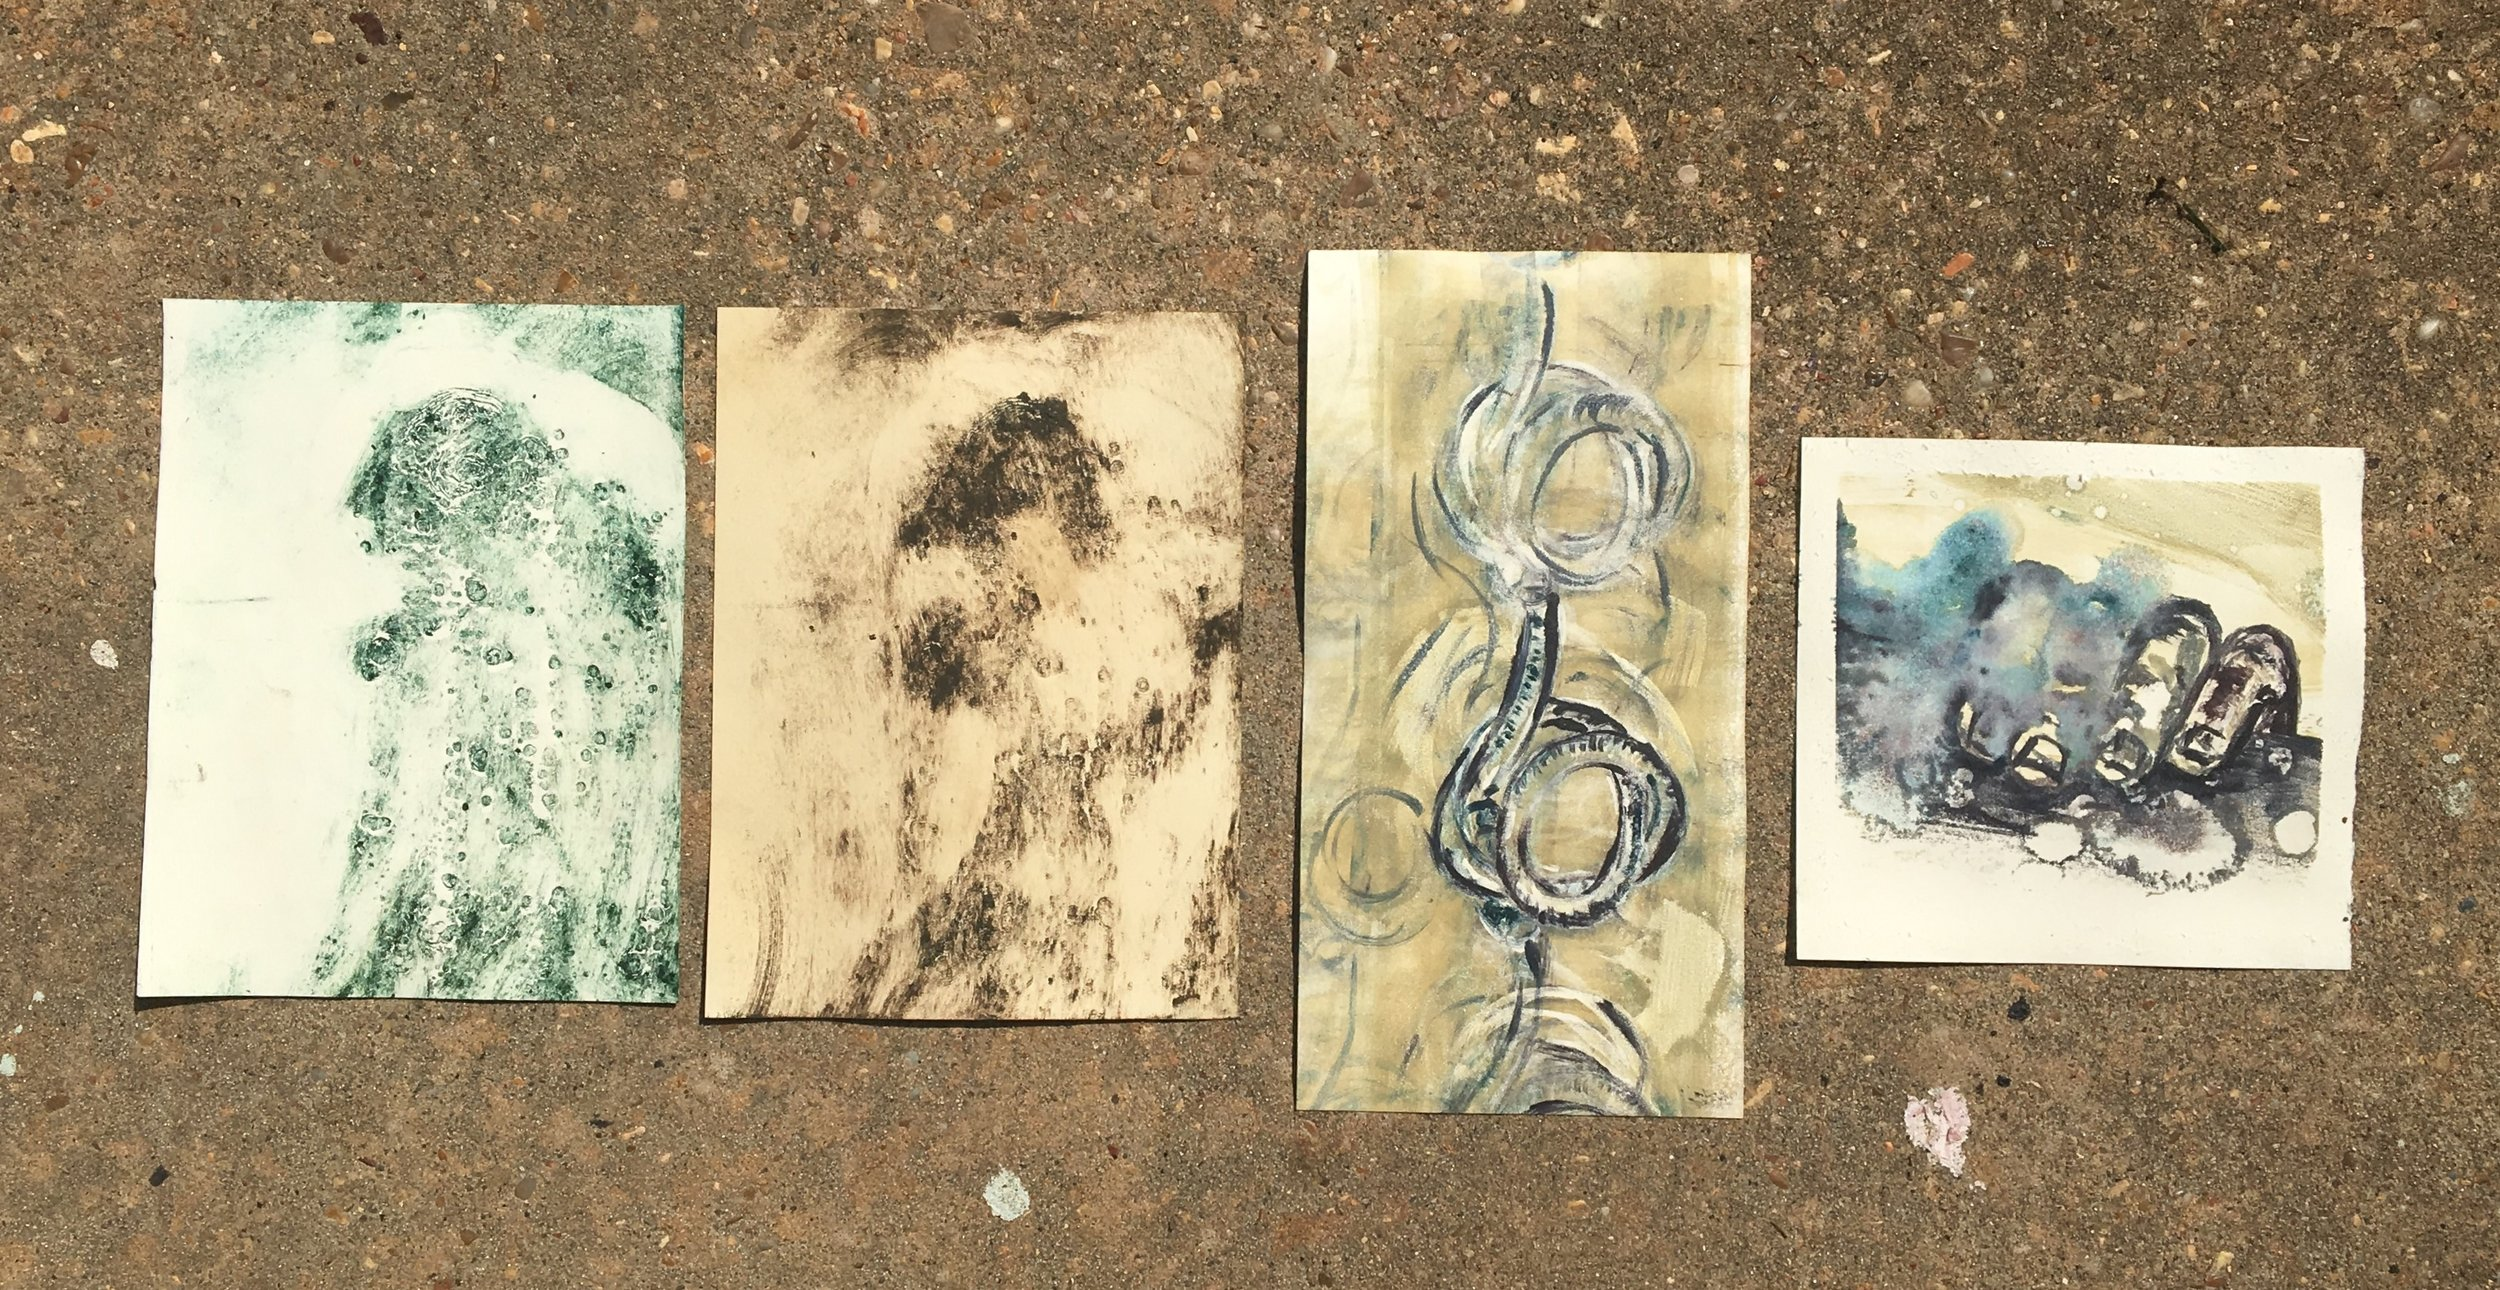 The prints to the left are collagraphs and the ones on the right are monotypes. The collagraph to the far left is an example of more prominent tire marks. I eventually stopped doing collagraphs with the car because in order to get the kind of pressure they required I had to either print really damp or use very few blankets, which both result in tire marks.